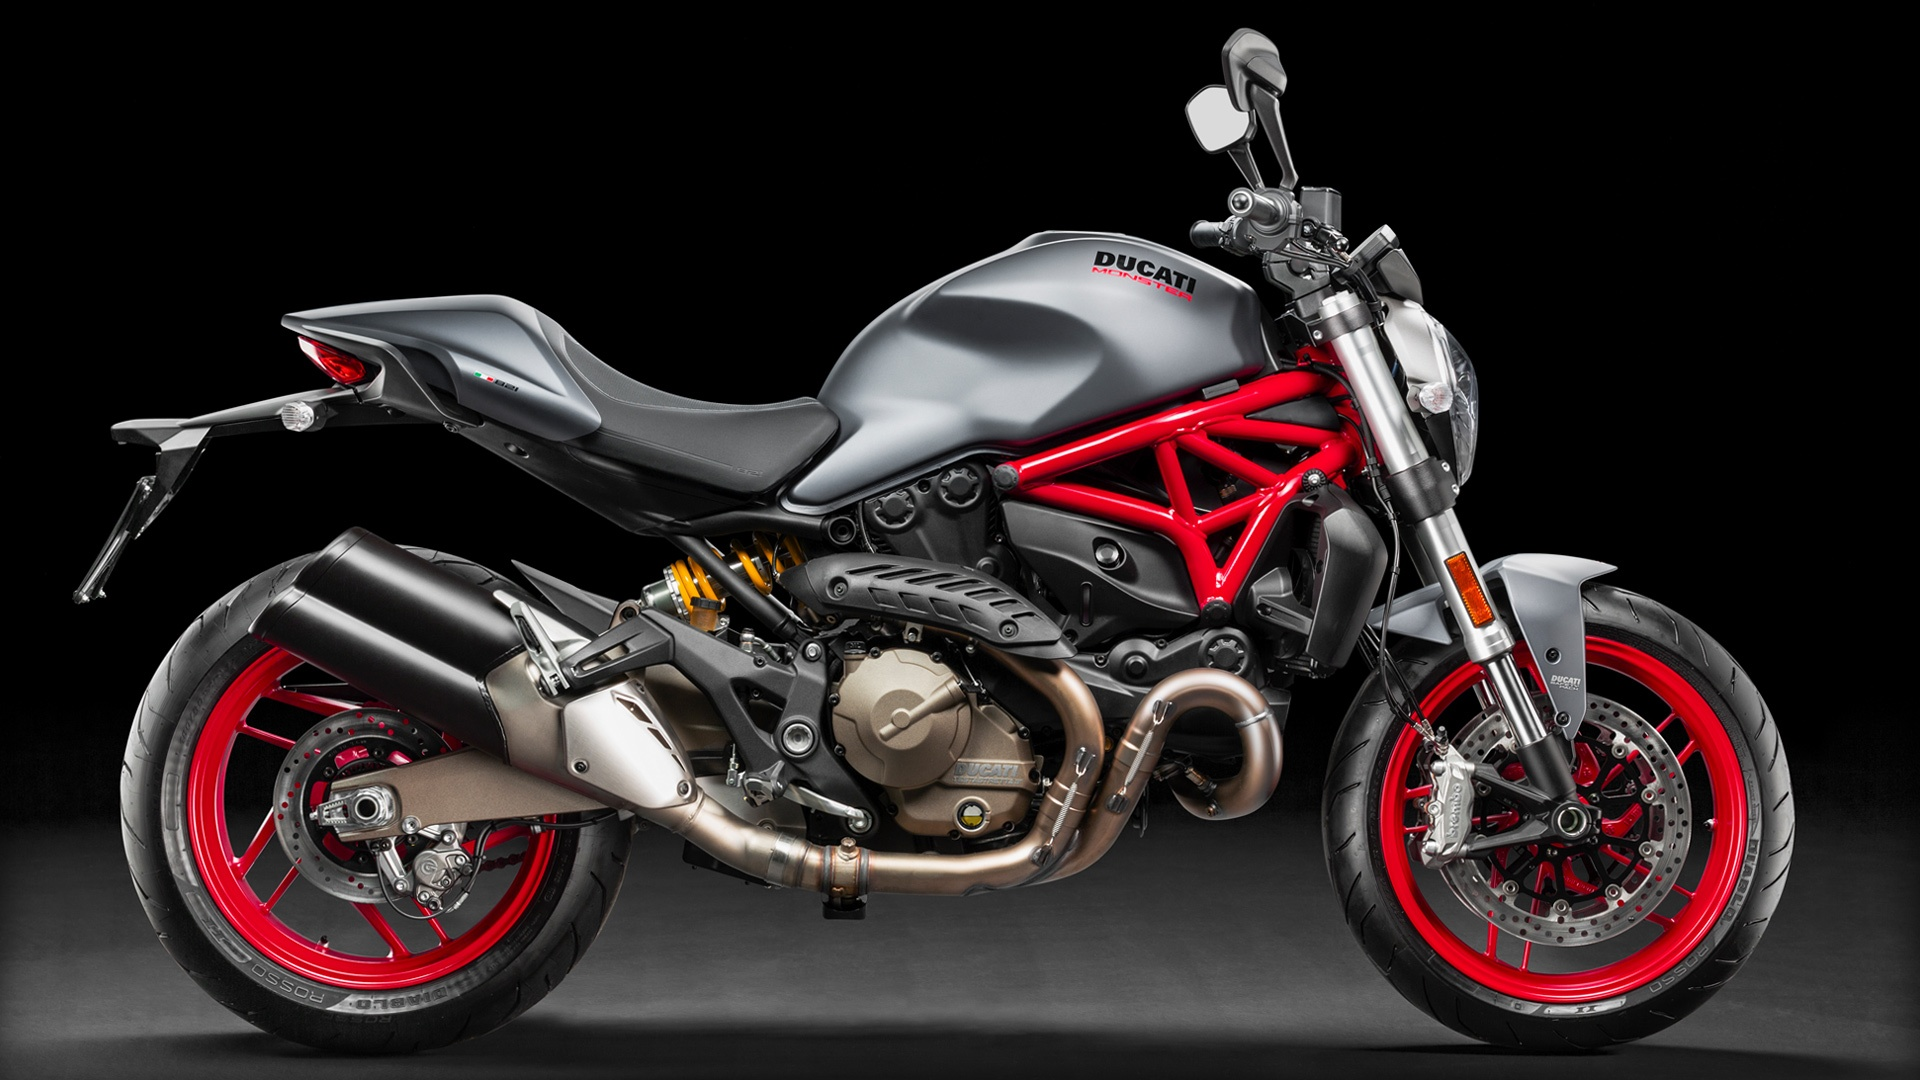 2017 Ducati Monster 821 for sale at Ducati Worcester, Worcestershire, Scotland